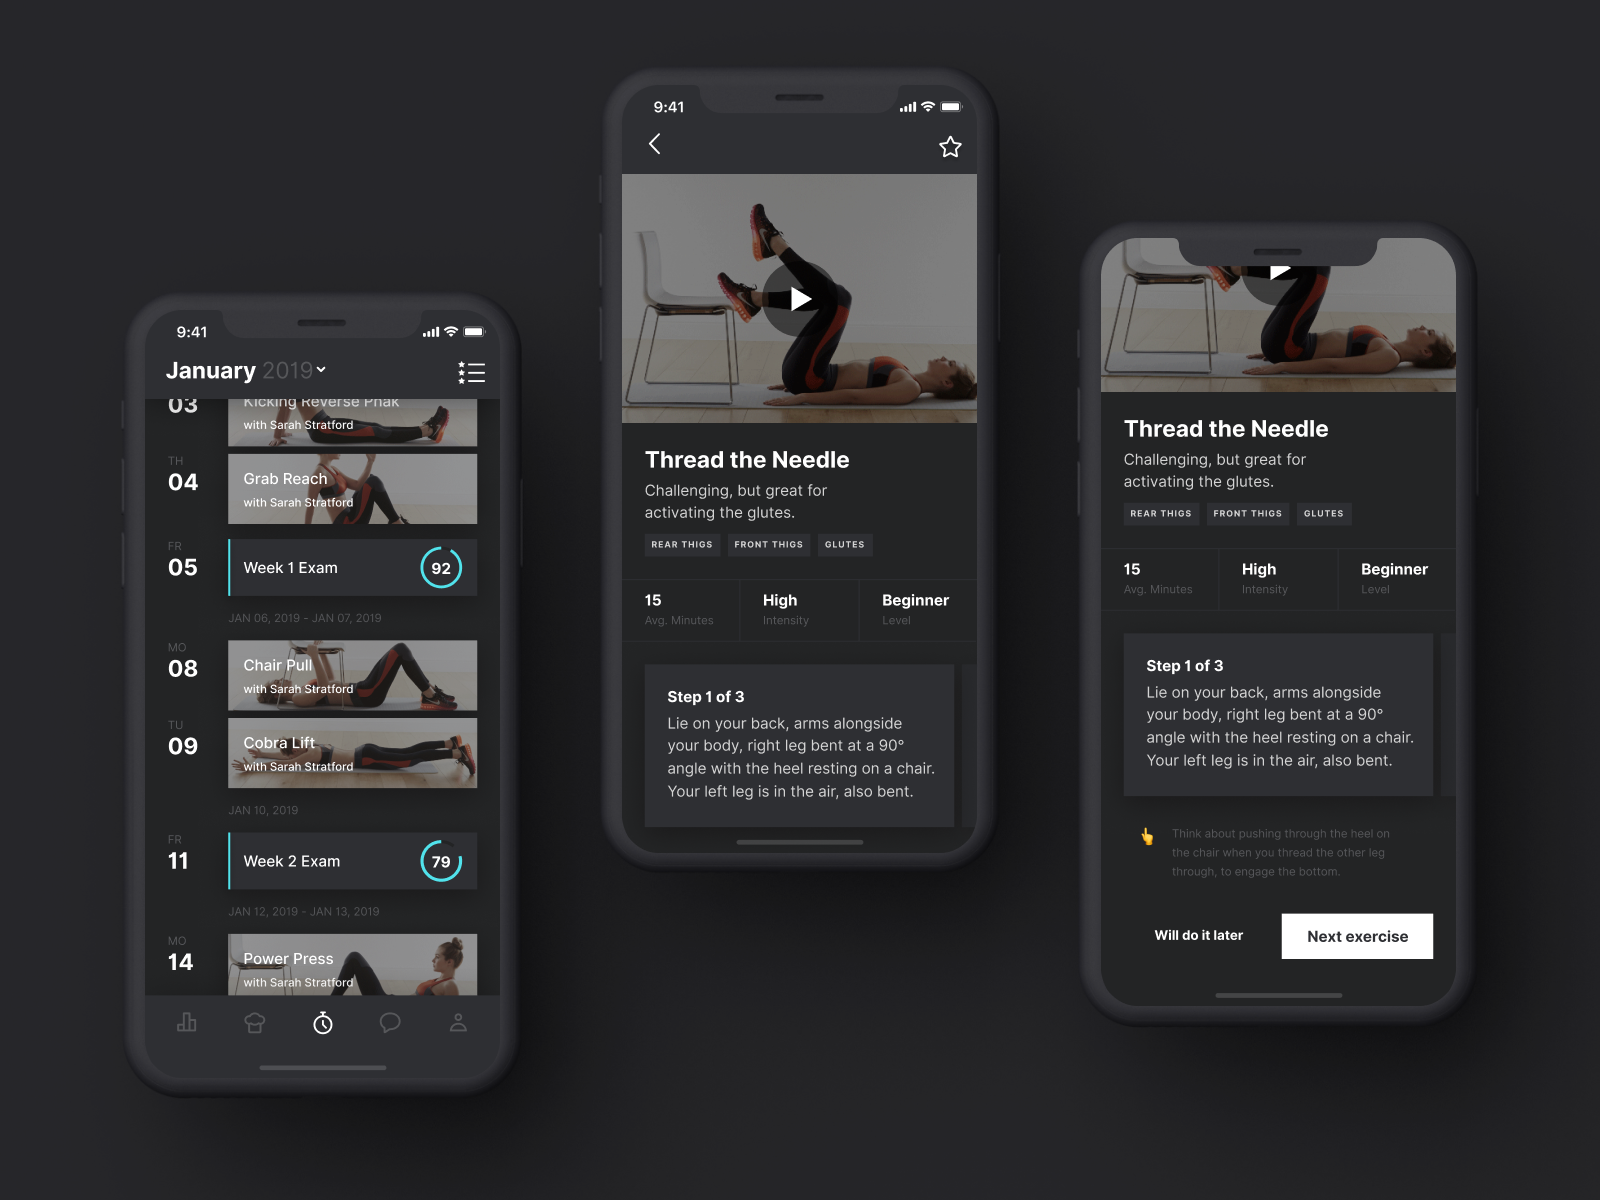 FitInTurn App Workout Workout apps, Fit app, Fitness